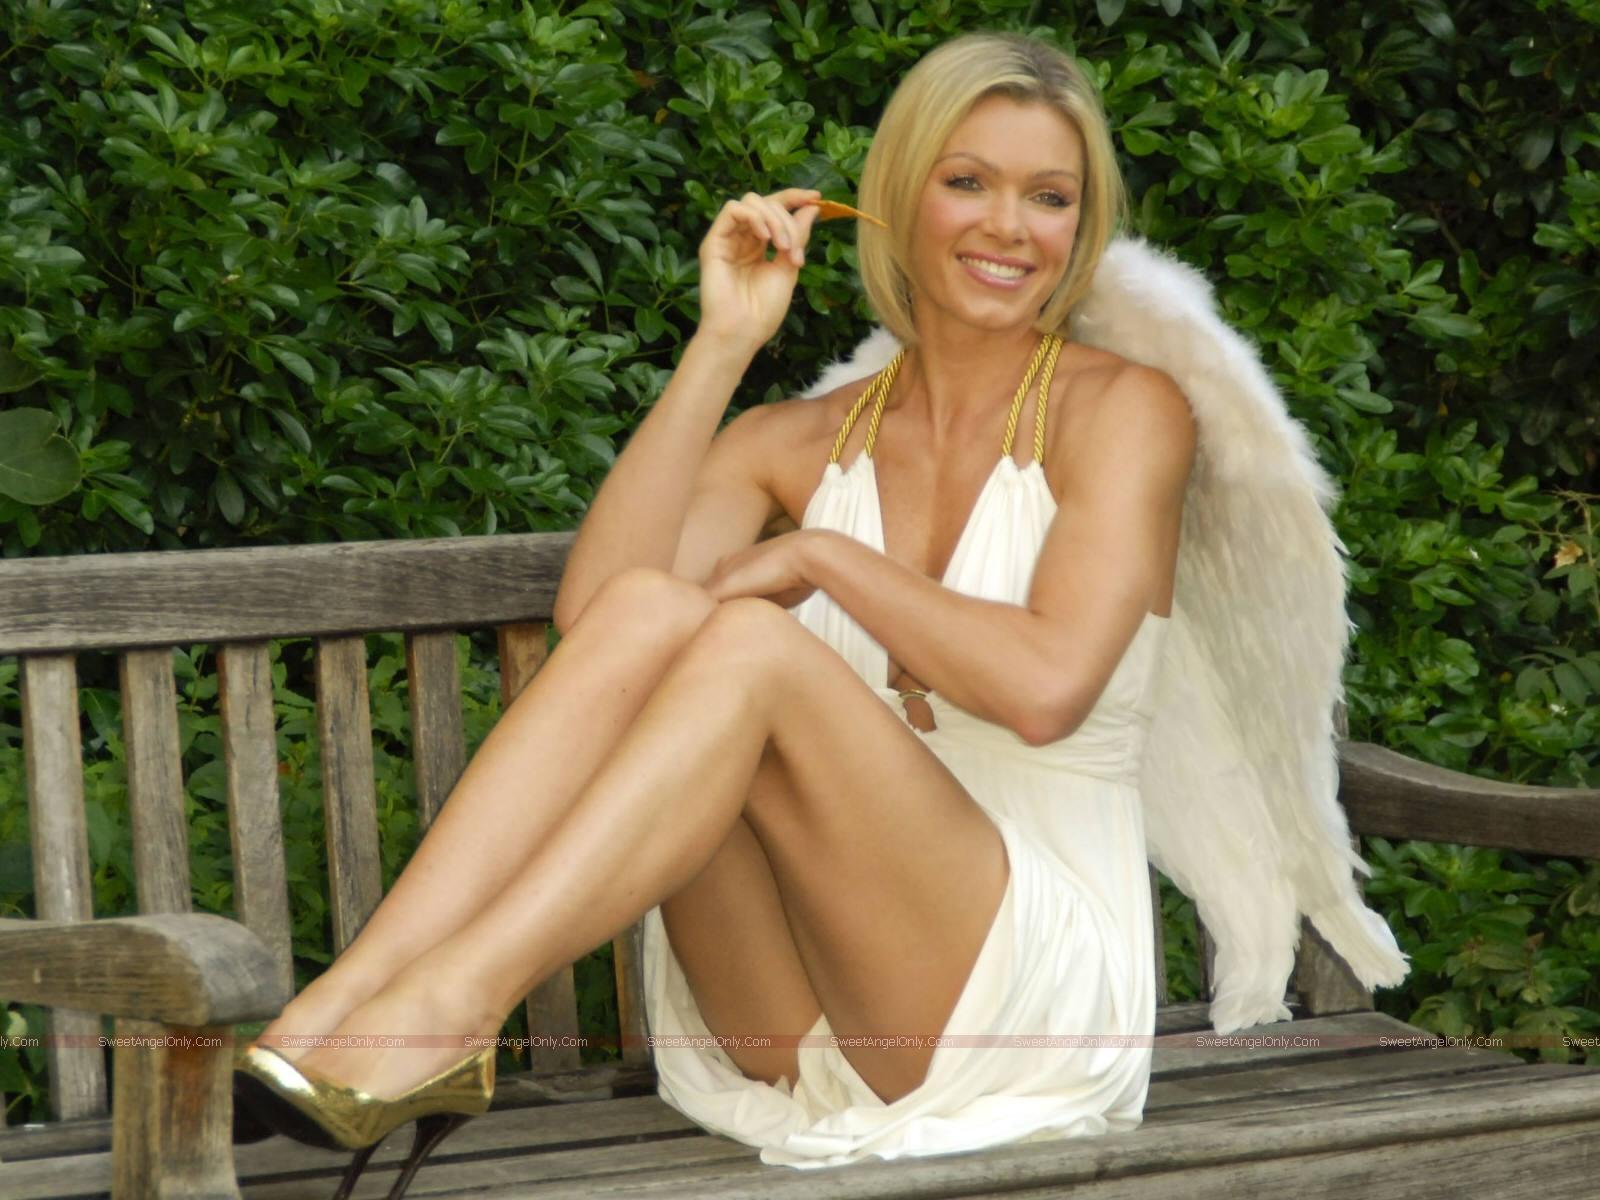 Hot Nell McAndrew nudes (87 photos), Pussy, Cleavage, Feet, swimsuit 2006